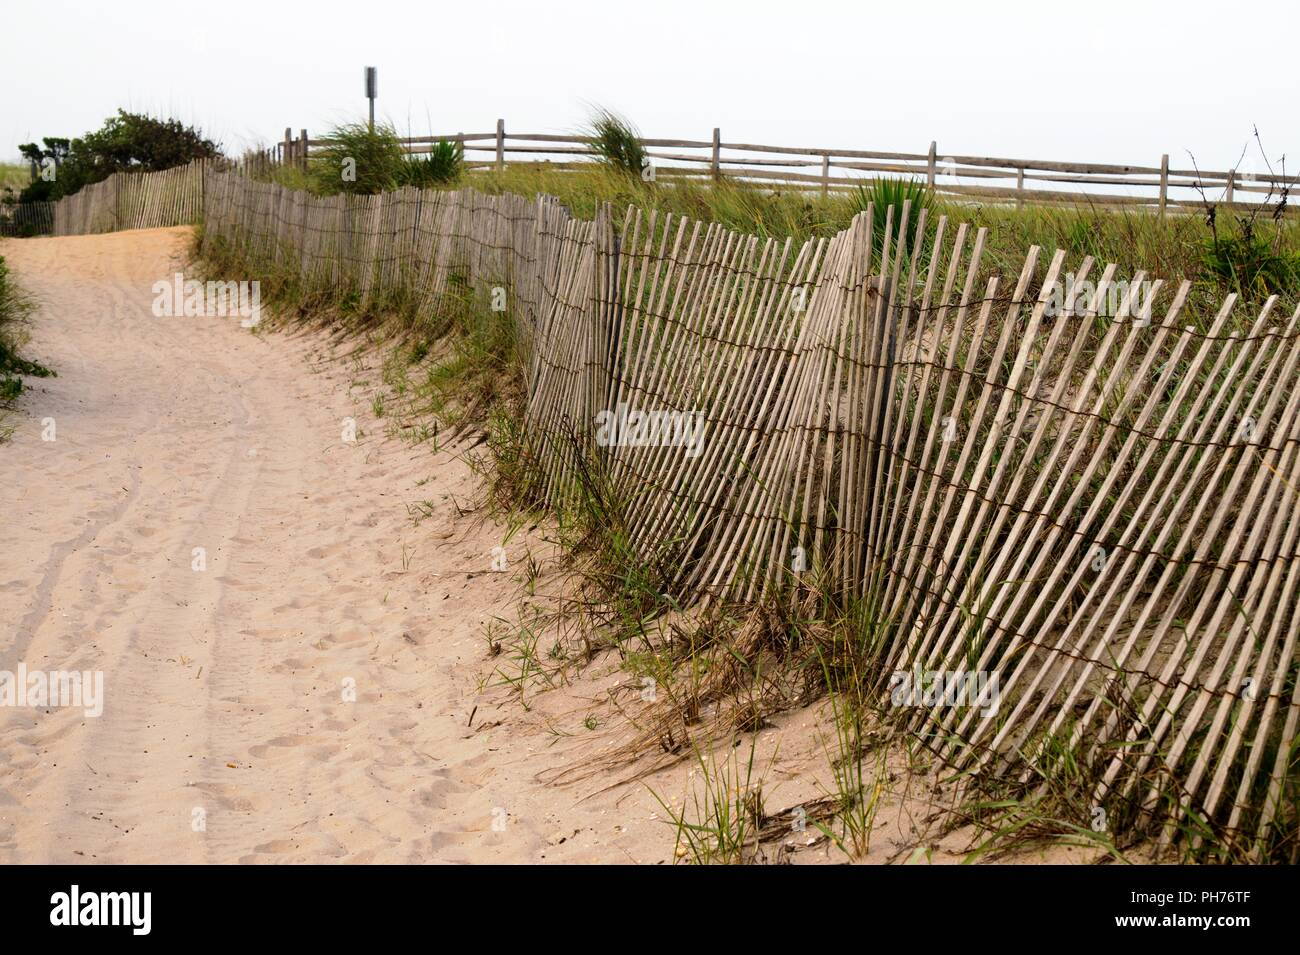 Well traveled sandy path through the sand dune - Stock Image